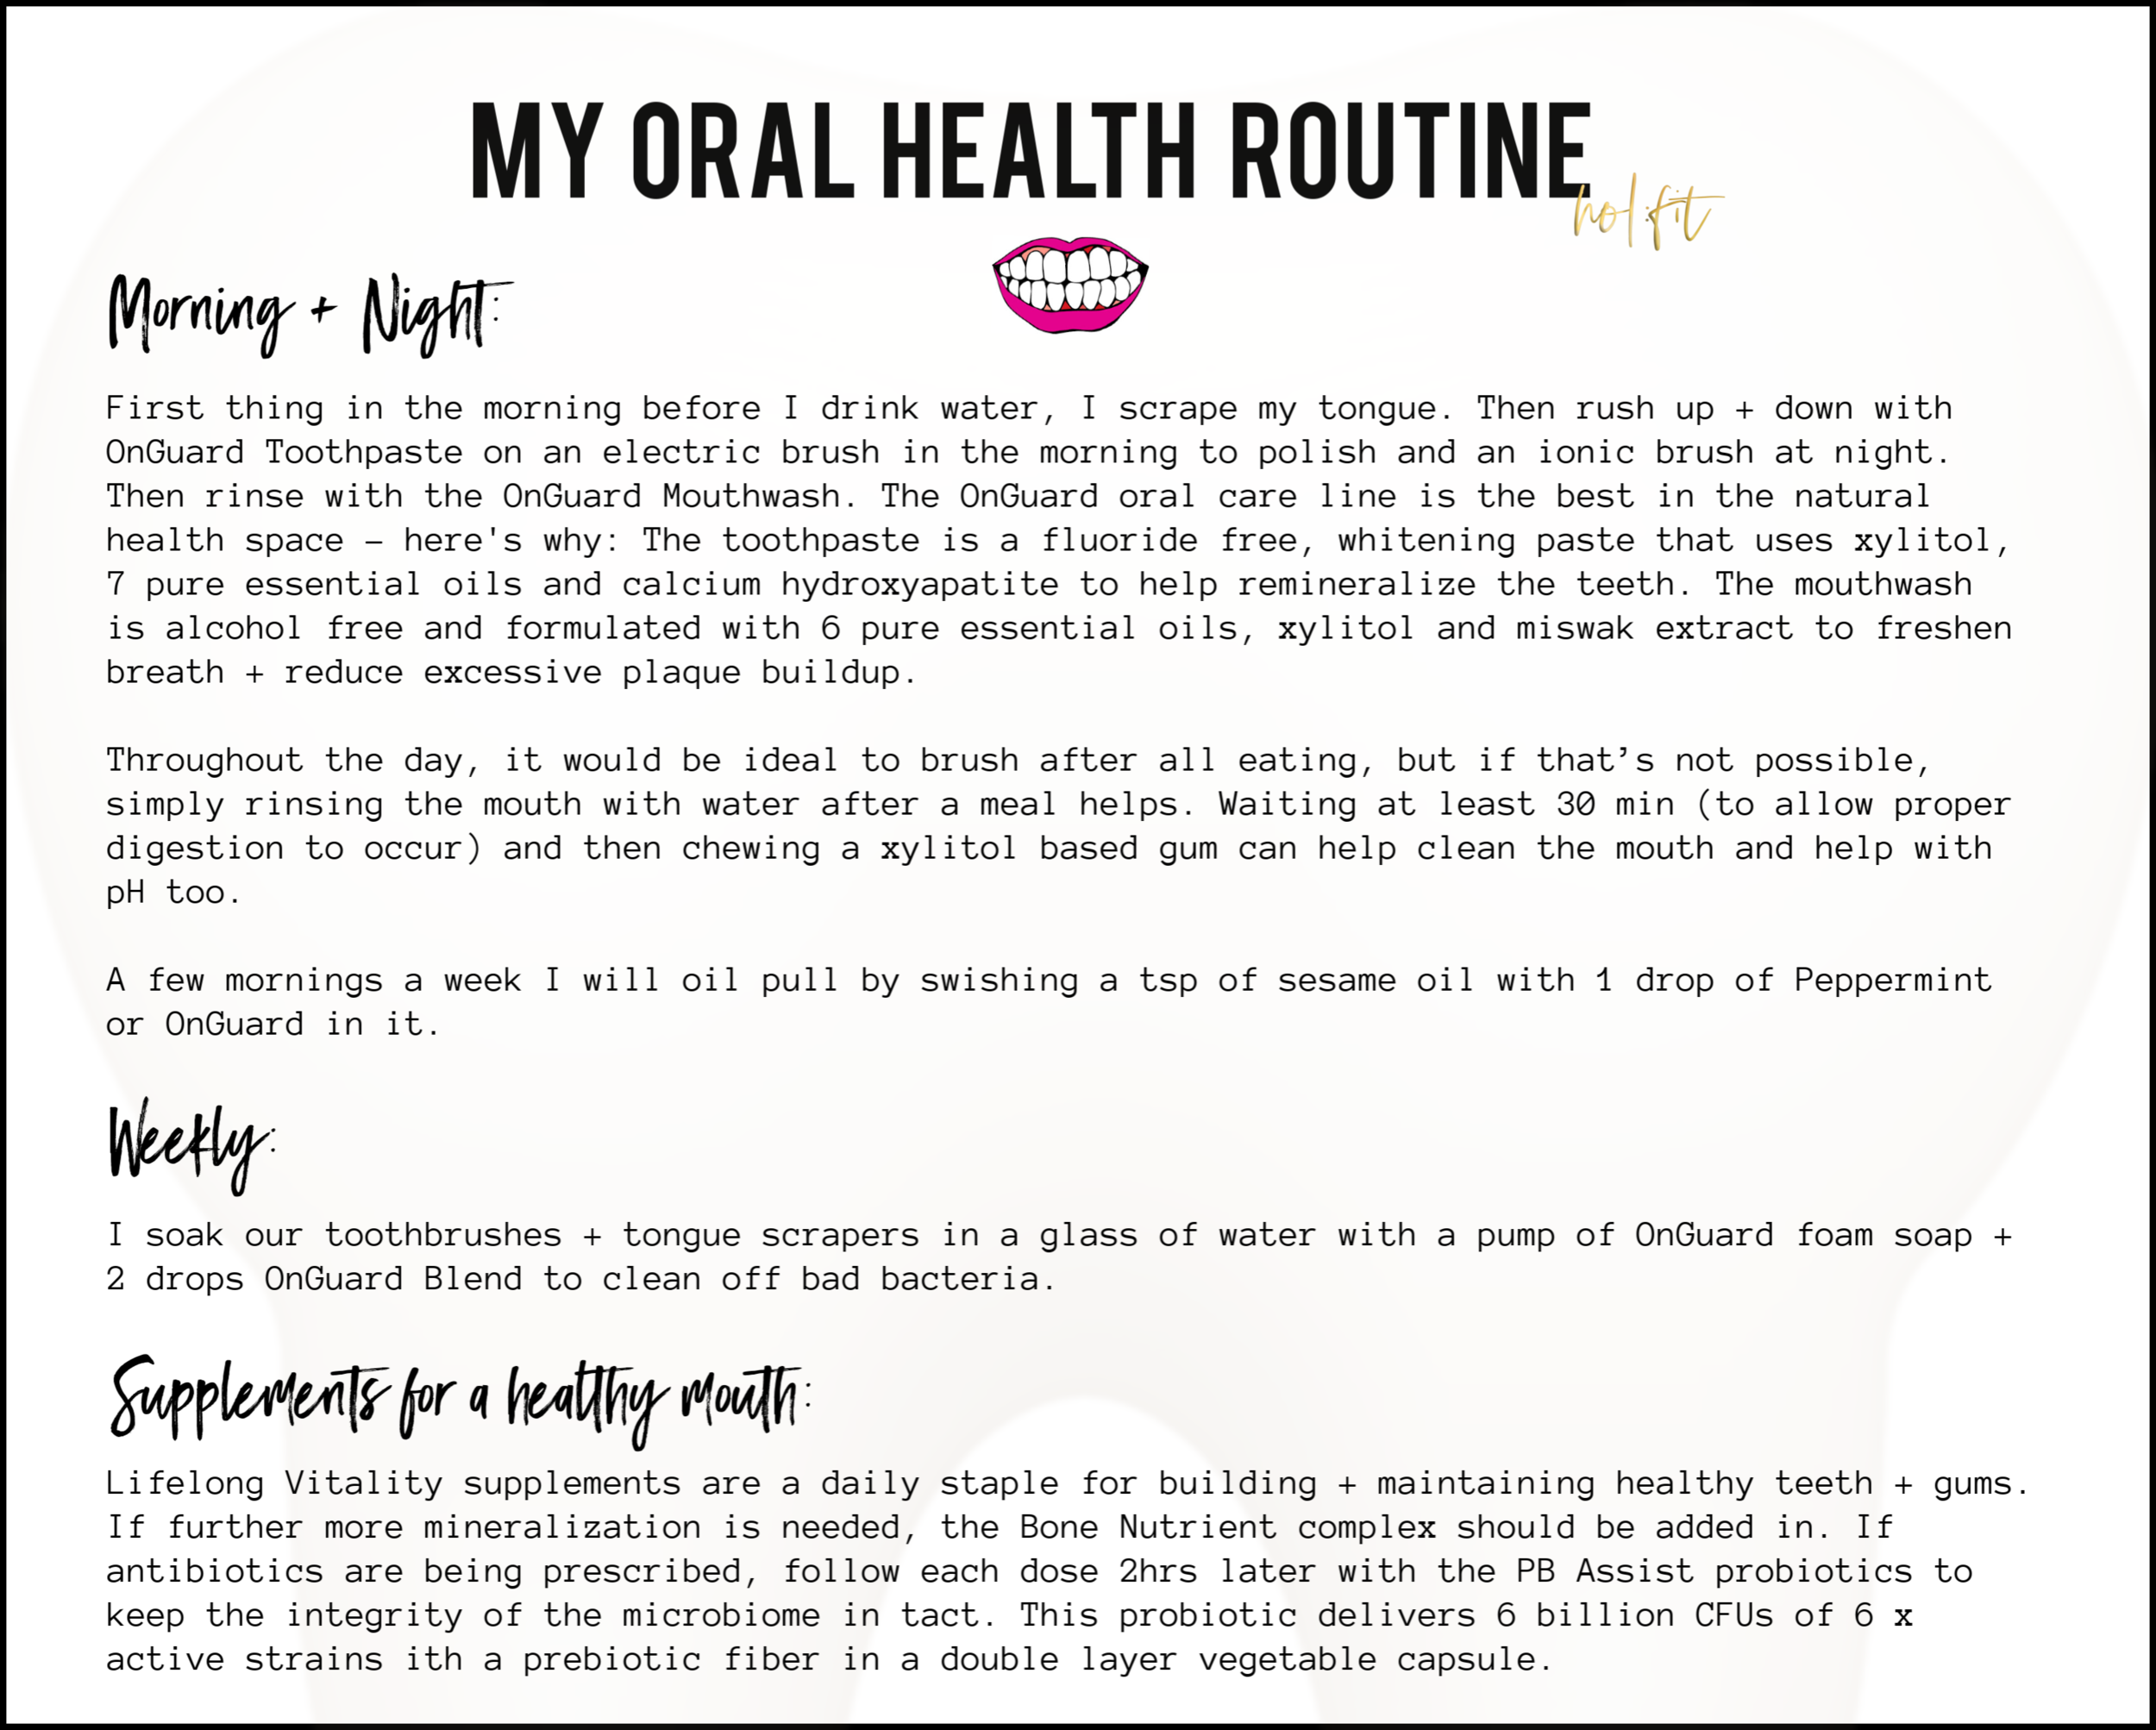 holfit oral health routine.png